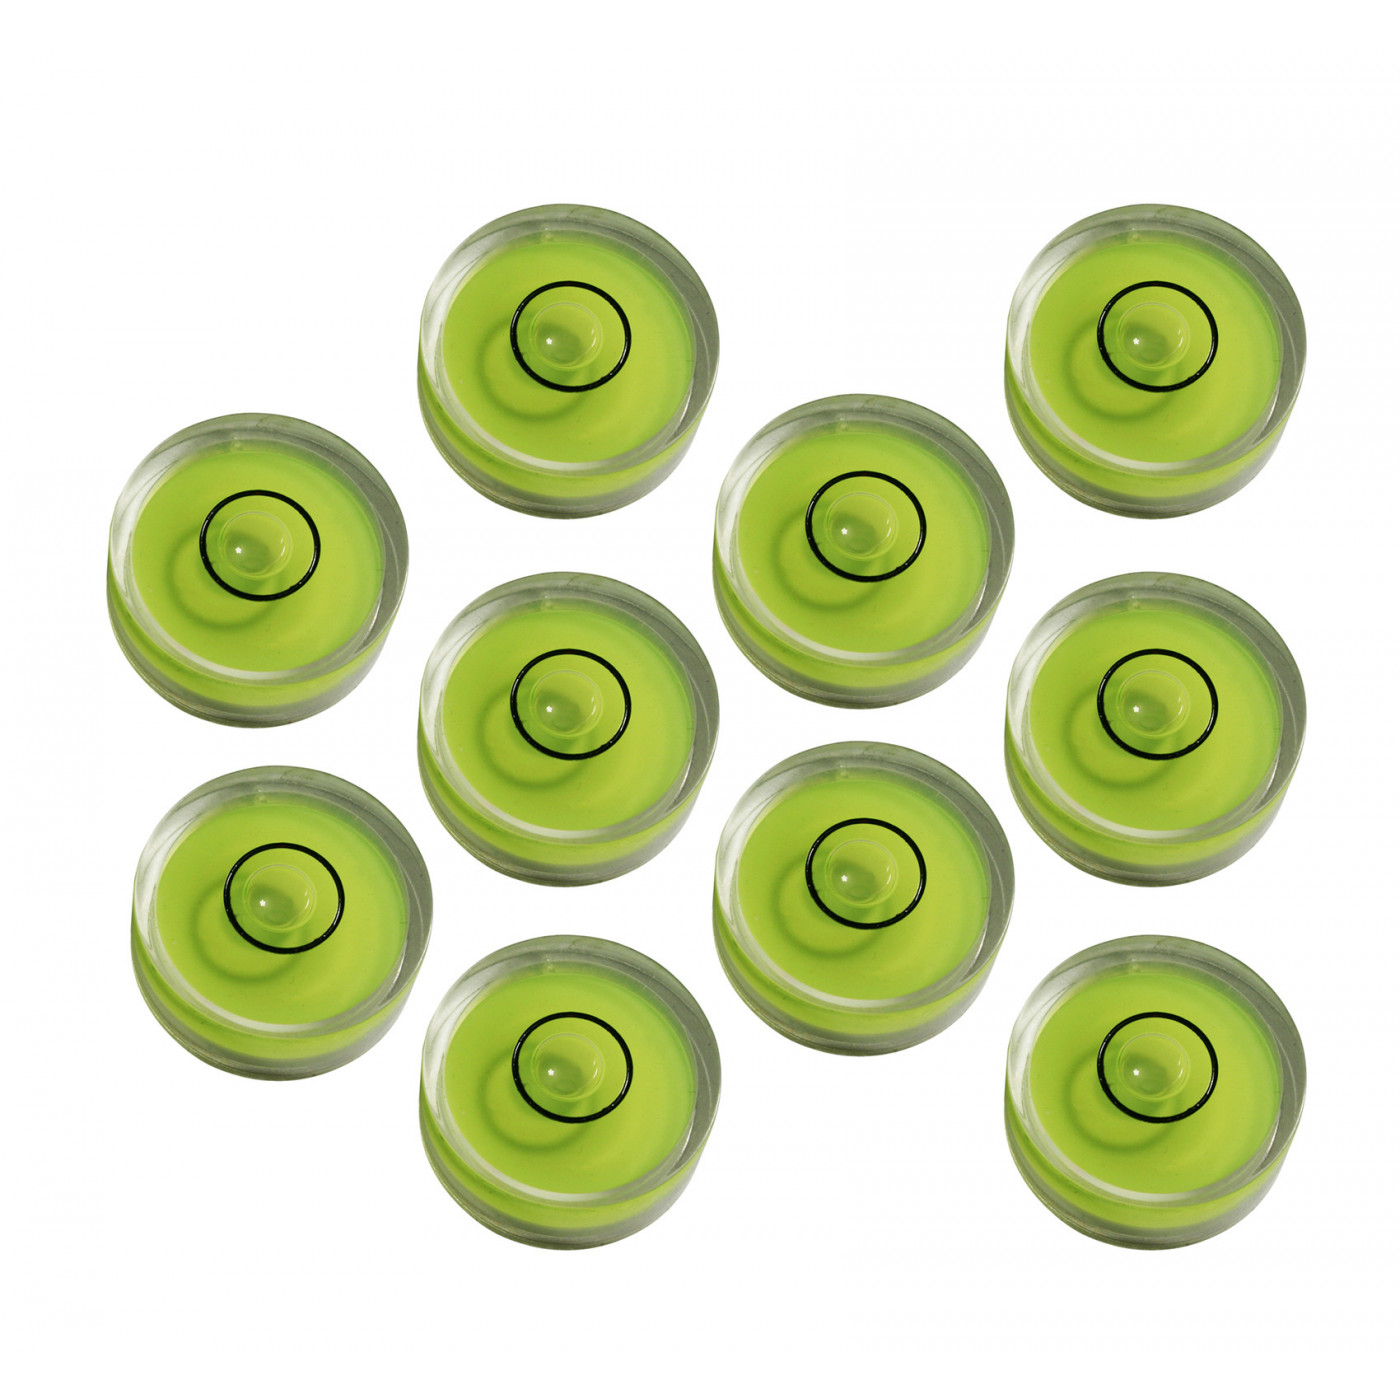 Set of 10 small round bubble levels size 2 (10x6 mm)